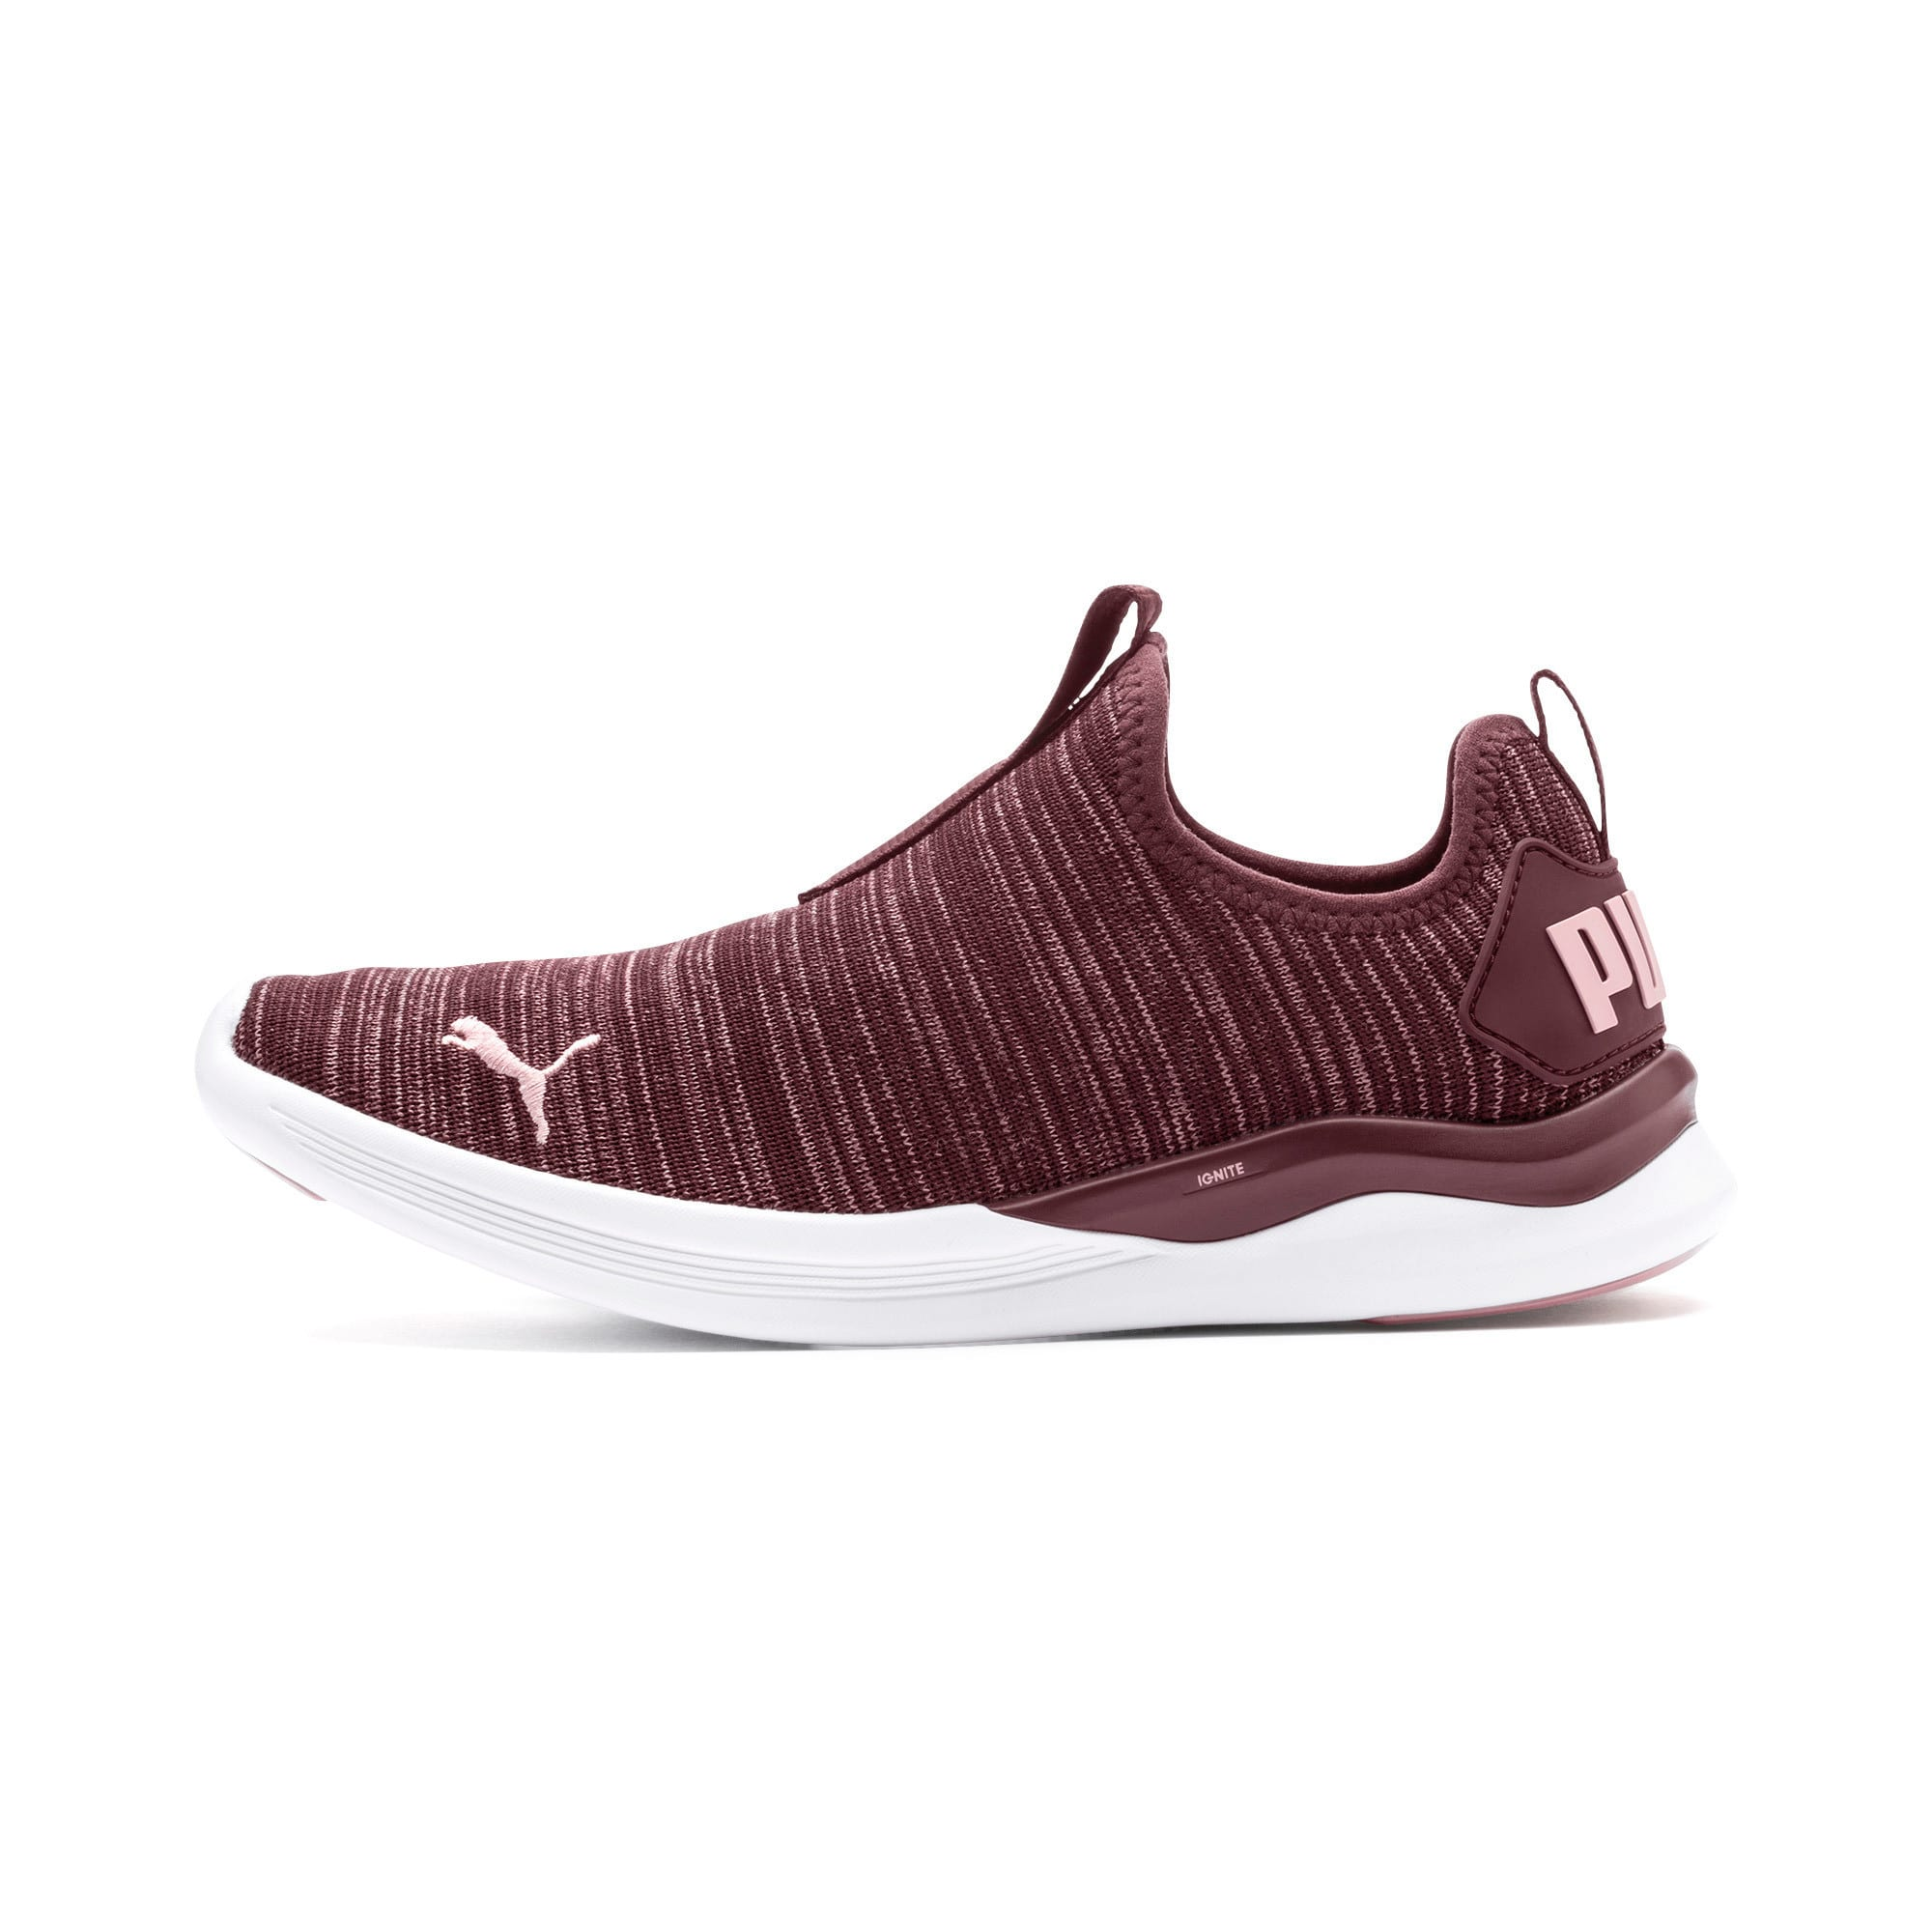 Thumbnail 1 of IGNITE Flash Summer Slip Women's Training Shoes, Vineyard Wine-Bridal Rose, medium